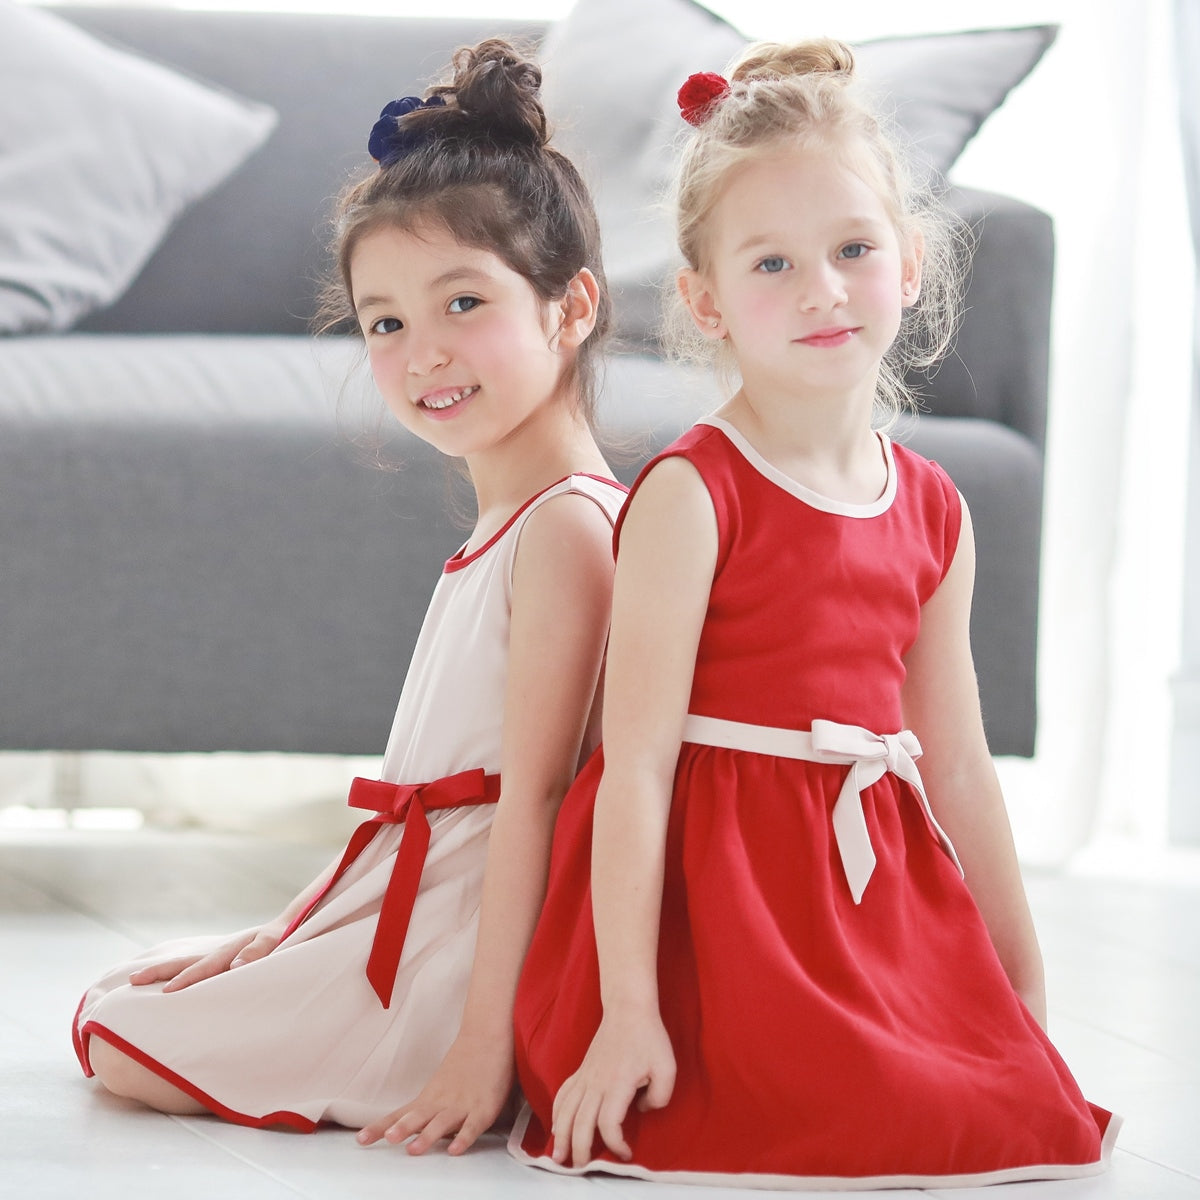 Butterfly Swing Dress (pink) - Bunny n Bloom Mommy & Me Dress